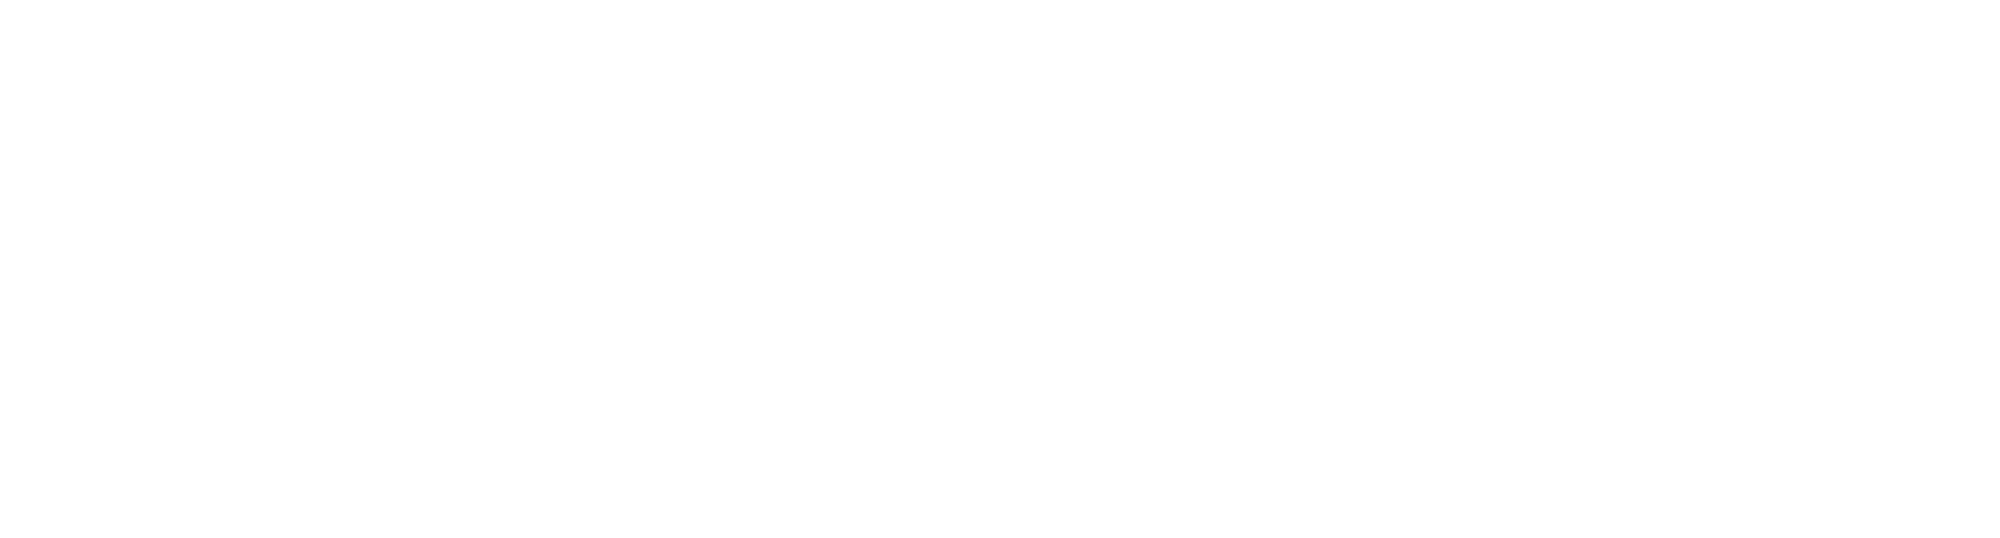 Insurance Network of Colorado